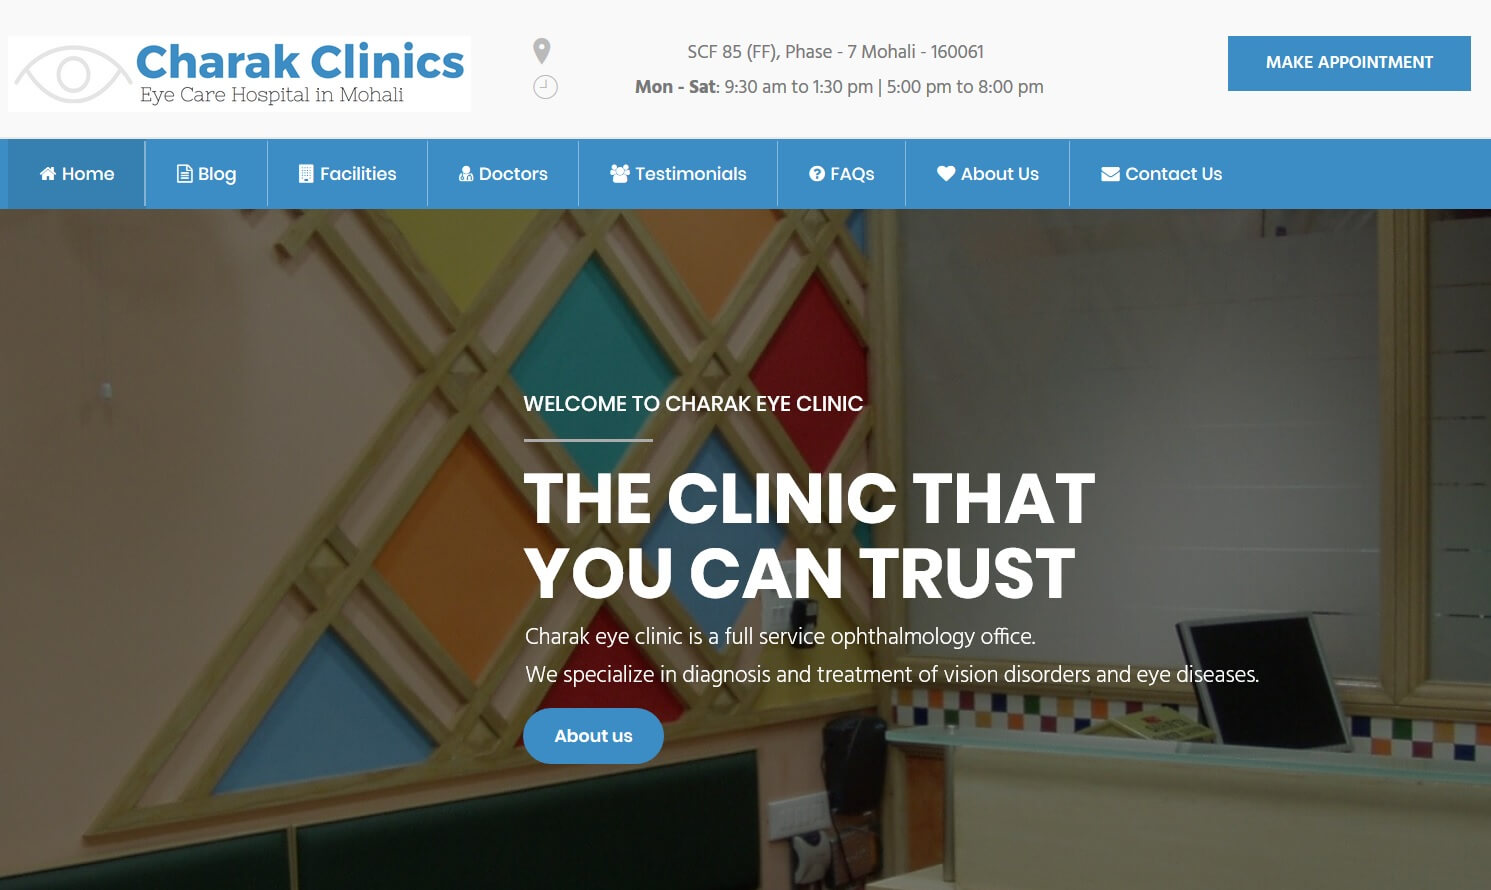 Charak Clinics | Child Care and Eye Care Clinic in Mohali , Punjab